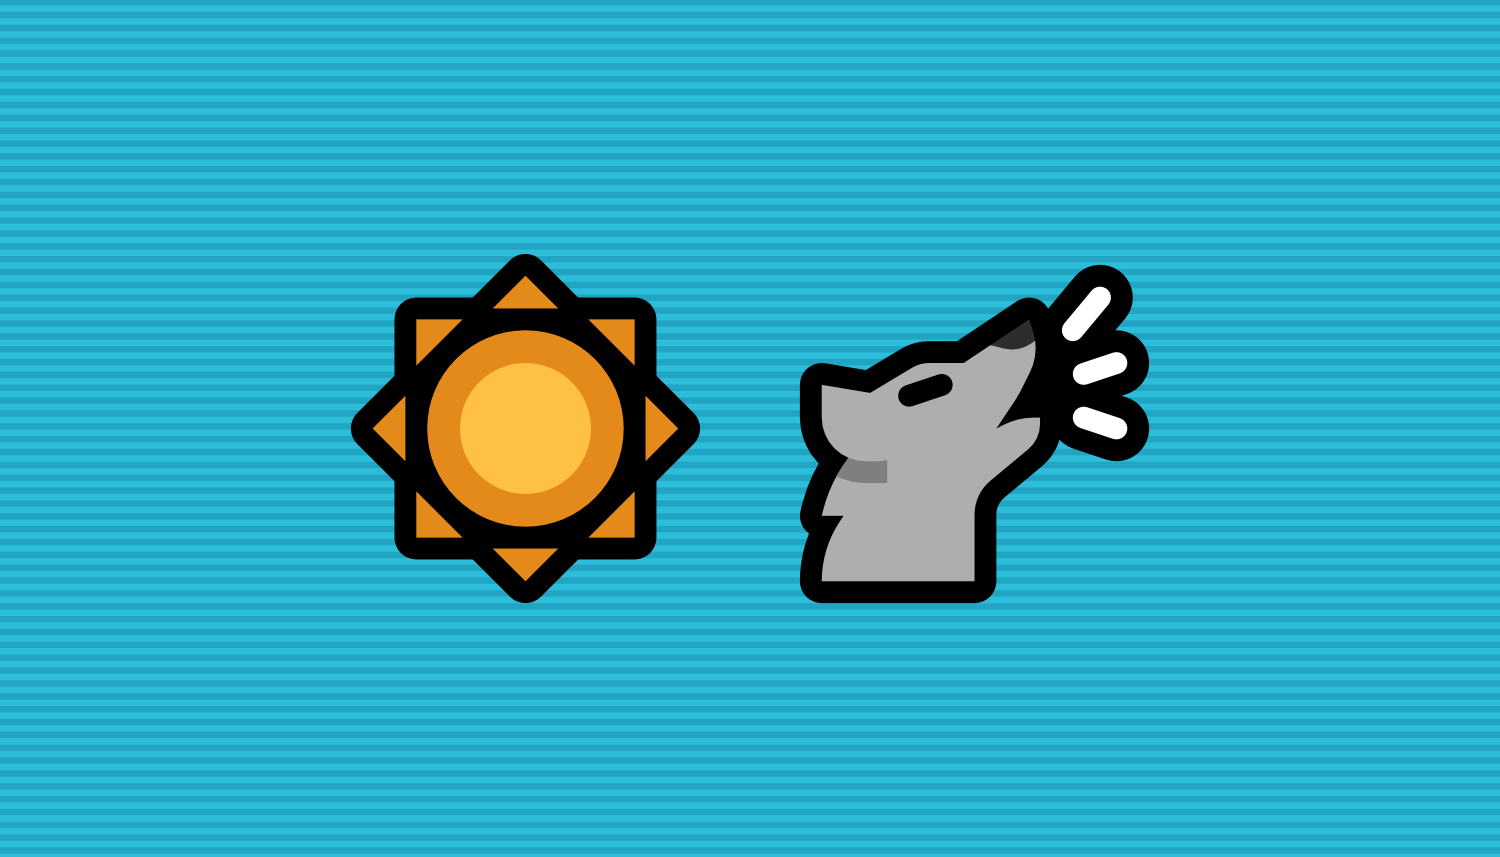 A Mutant Standard sun emoji and wolf awooing emoji side by side in front of a cyan background with faint horizontal stripes.